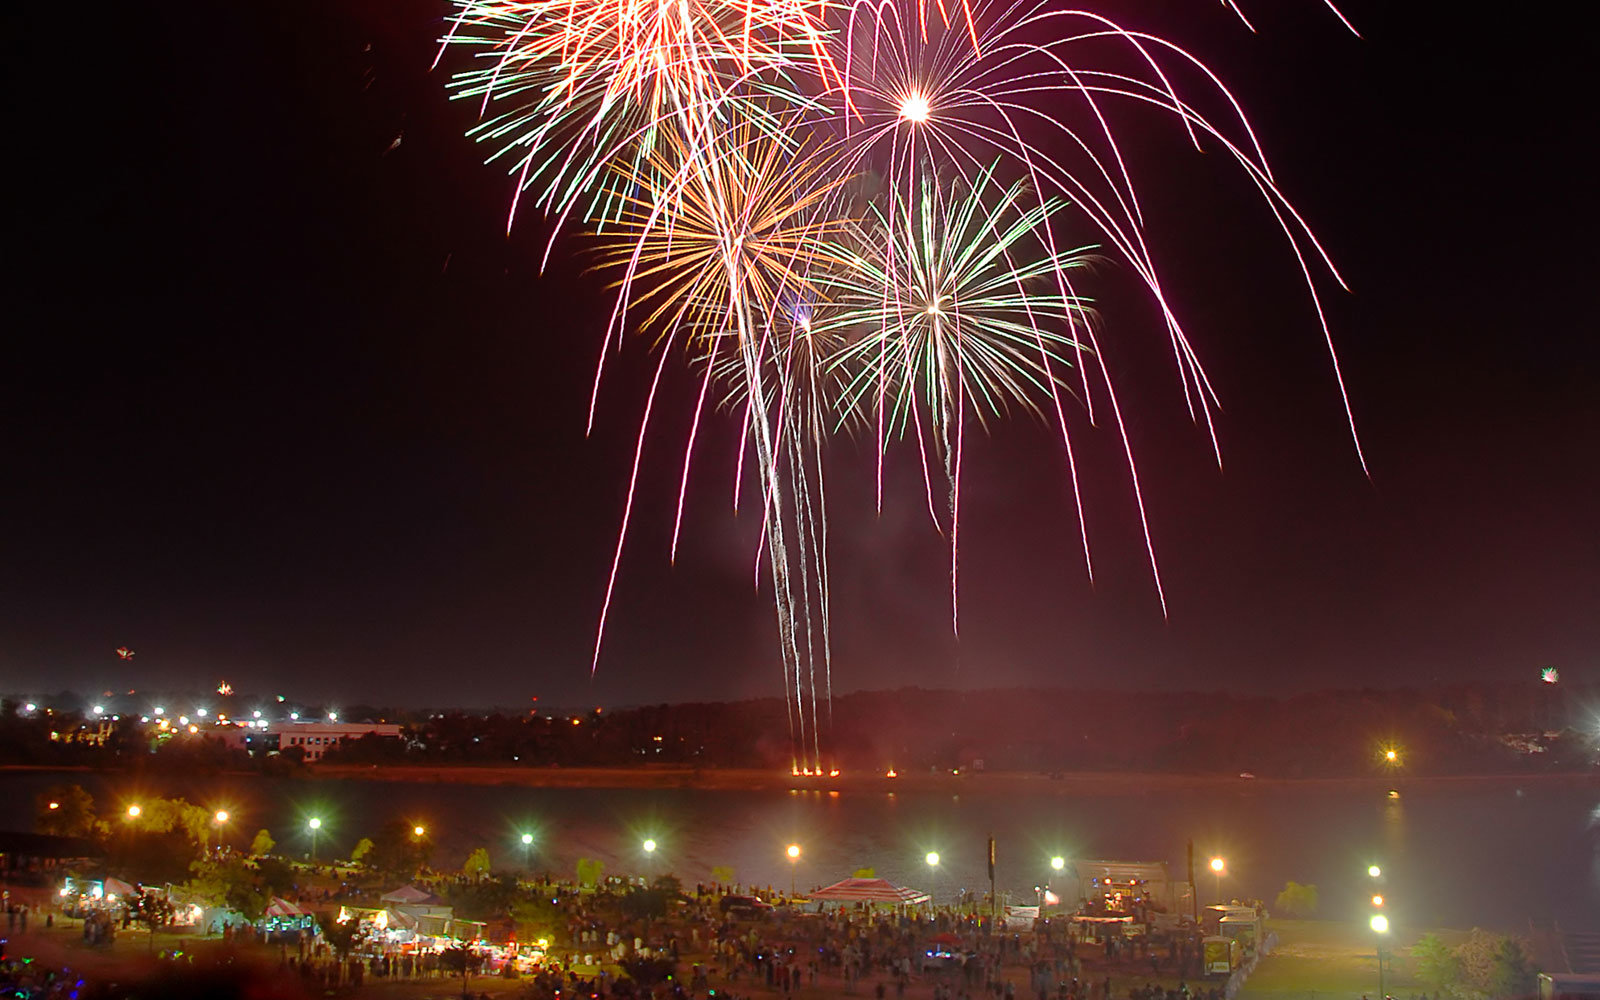 Fireworks, Virginia Beach, Virginia